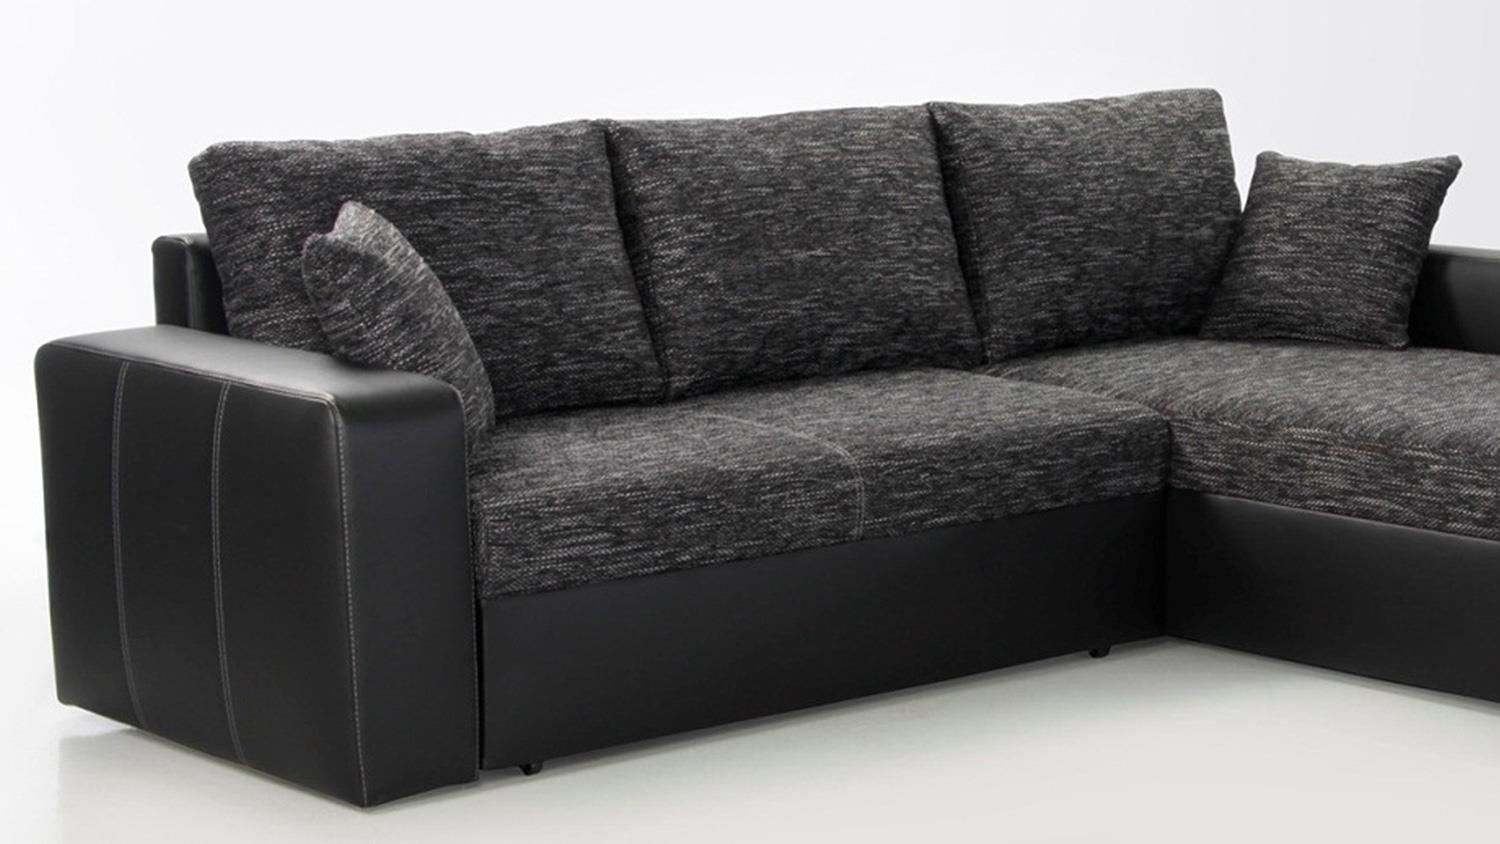 Ecksofa 3 X 2 Ecksofa Viper Sofa In Schwarz Anthrazit Mit Bettfunktion